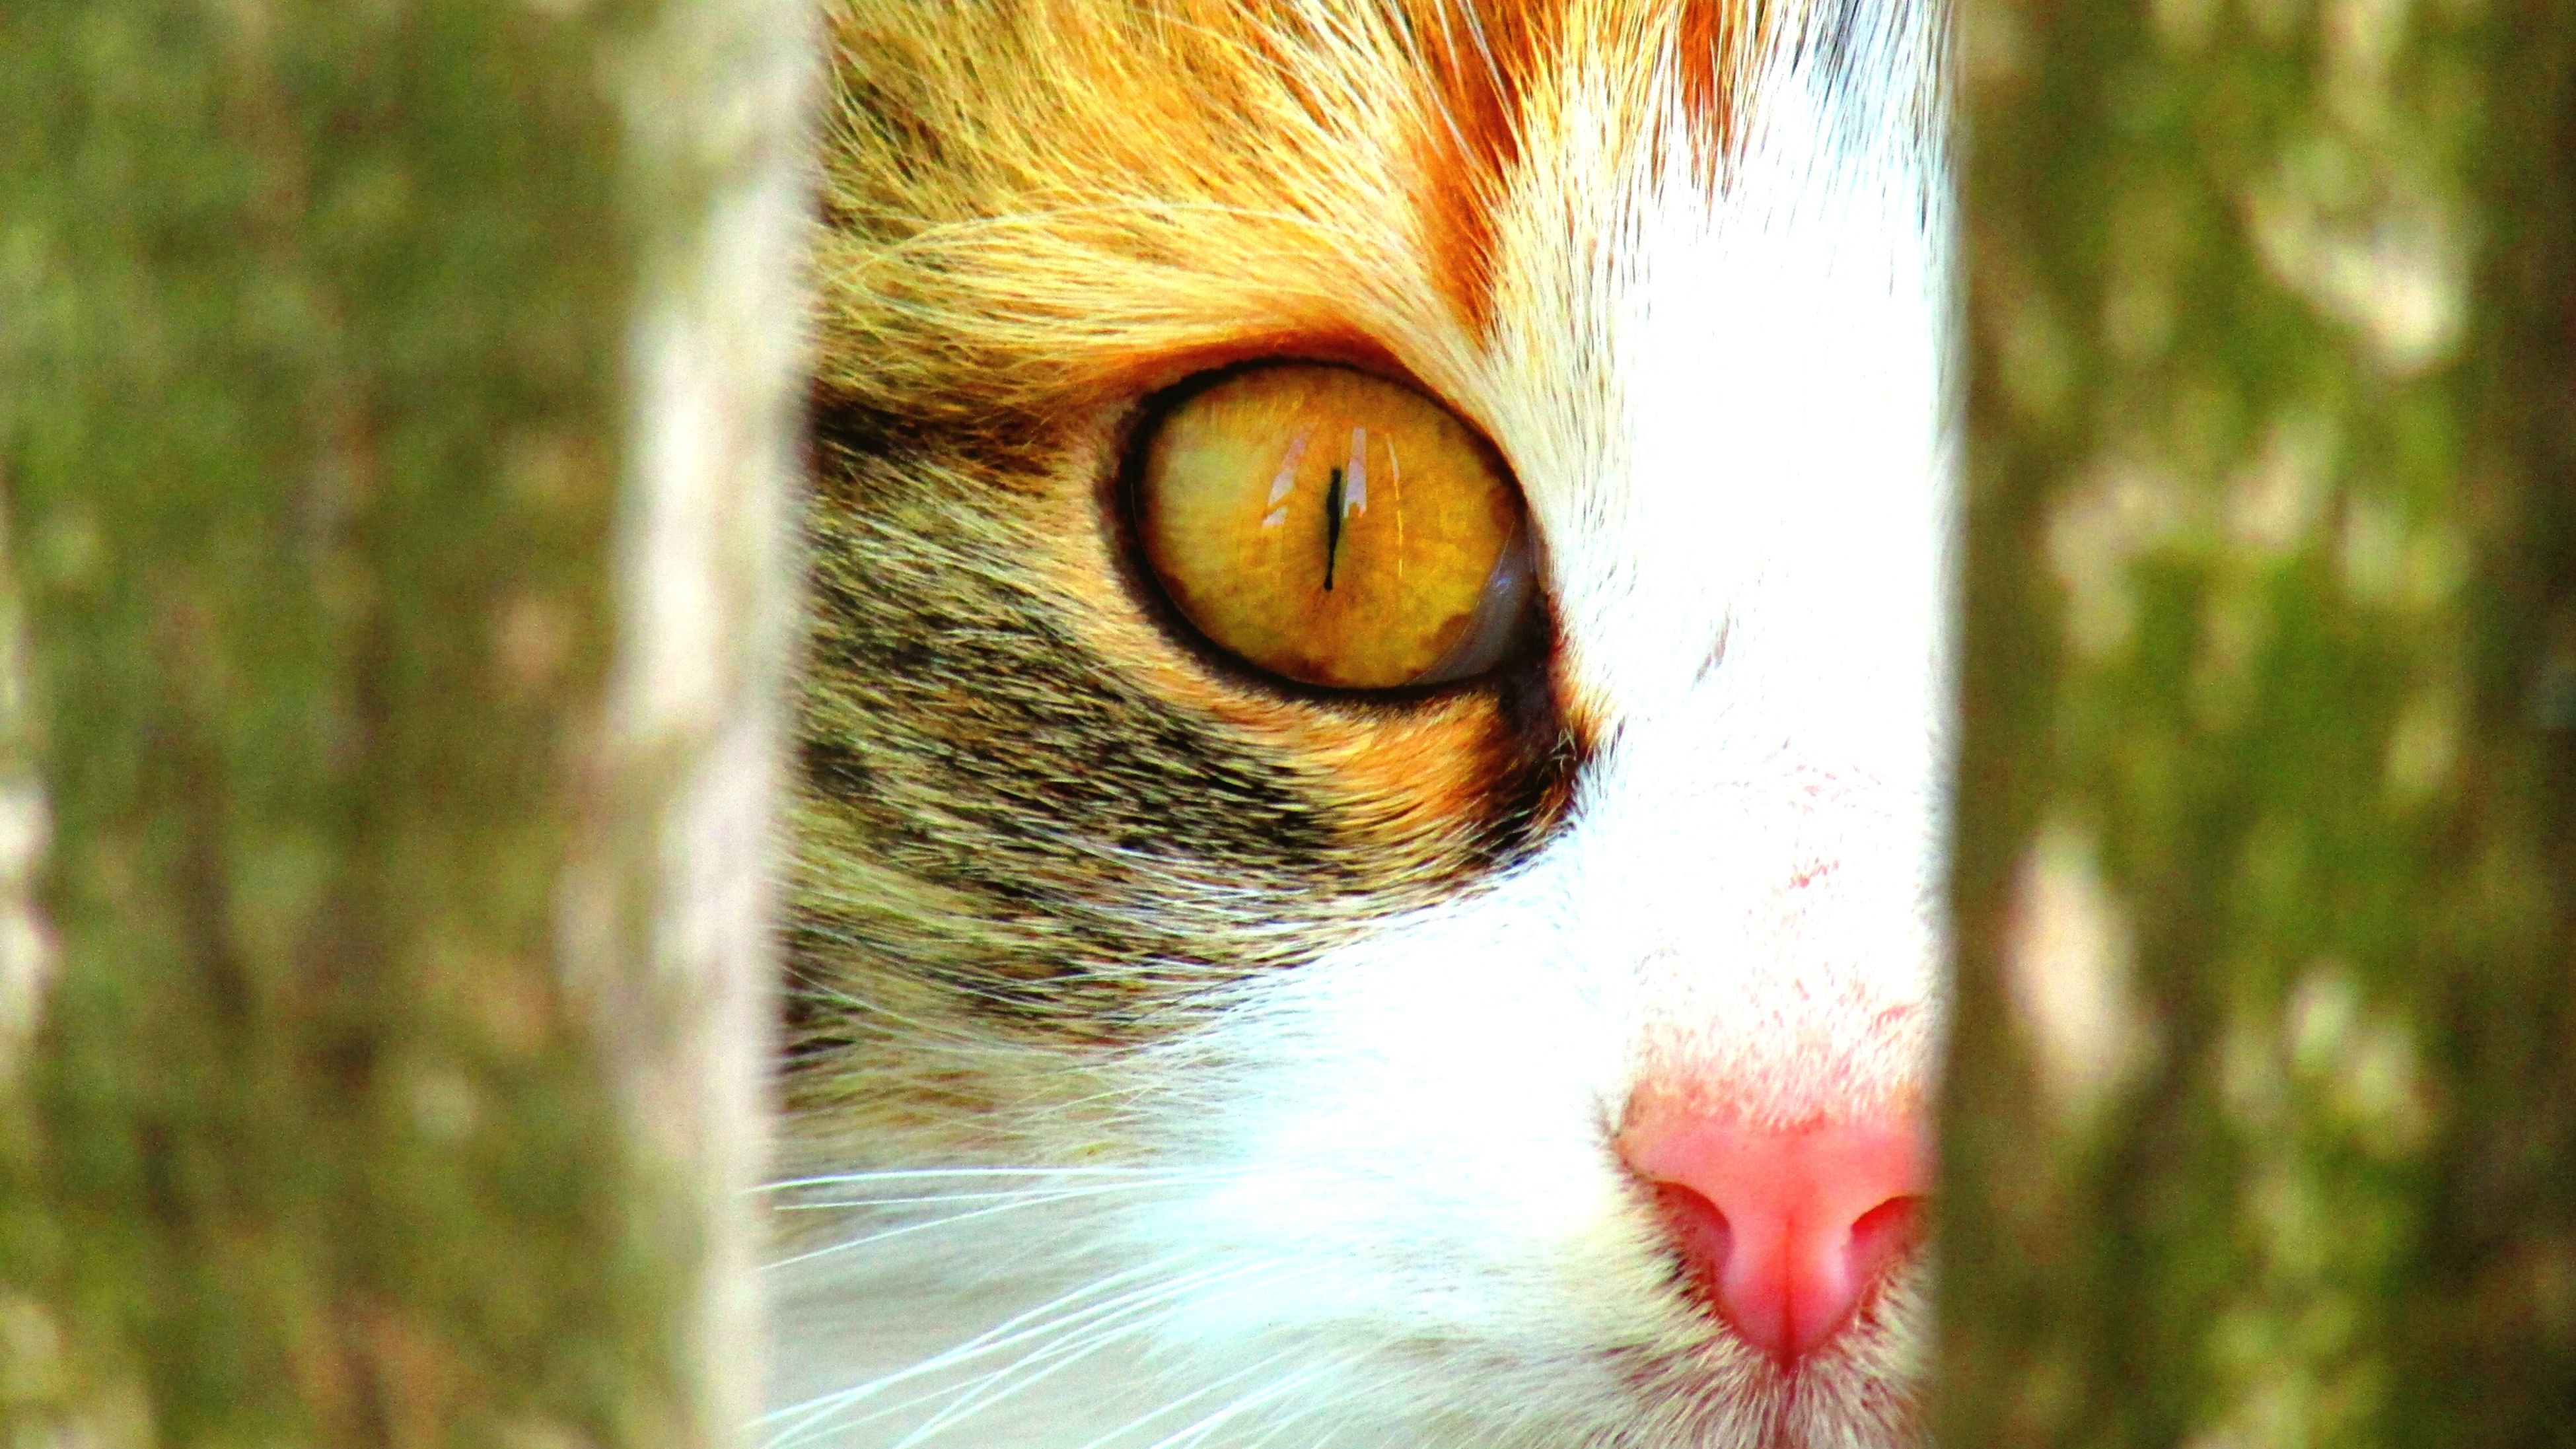 pets, domestic animals, one animal, domestic cat, animal themes, mammal, close-up, feline, whisker, no people, animal eye, day, nature, outdoors